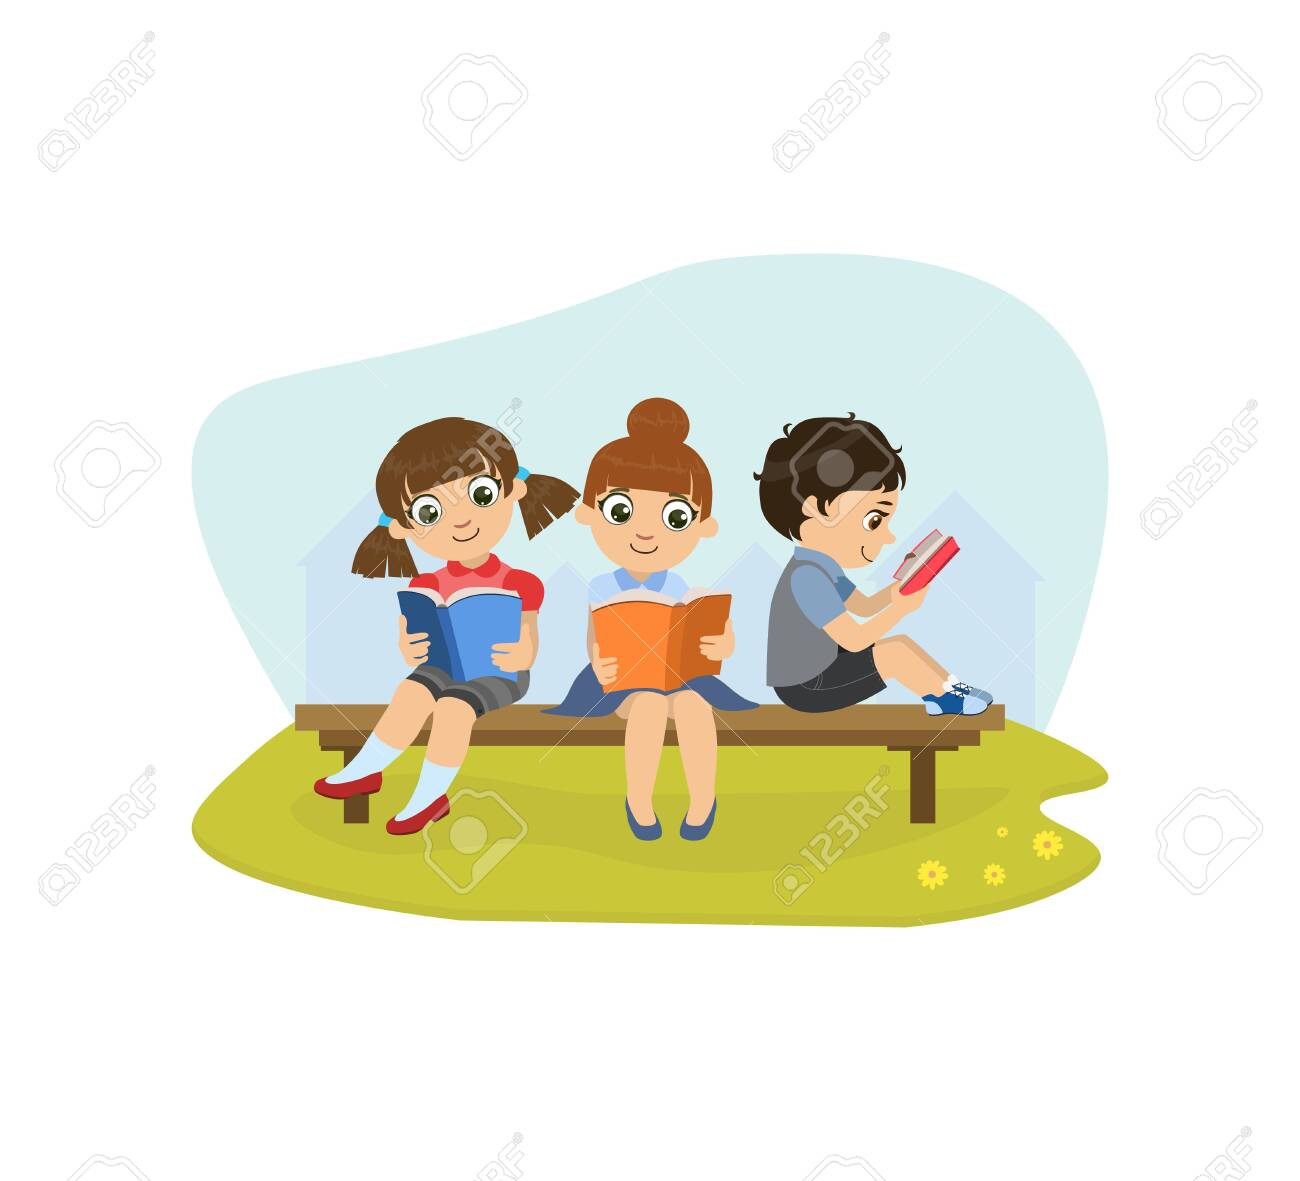 Cute Little Girls and Boy Sitting on Bench in Park and Reading Books Vector Illustration, Web Design. - 128165514